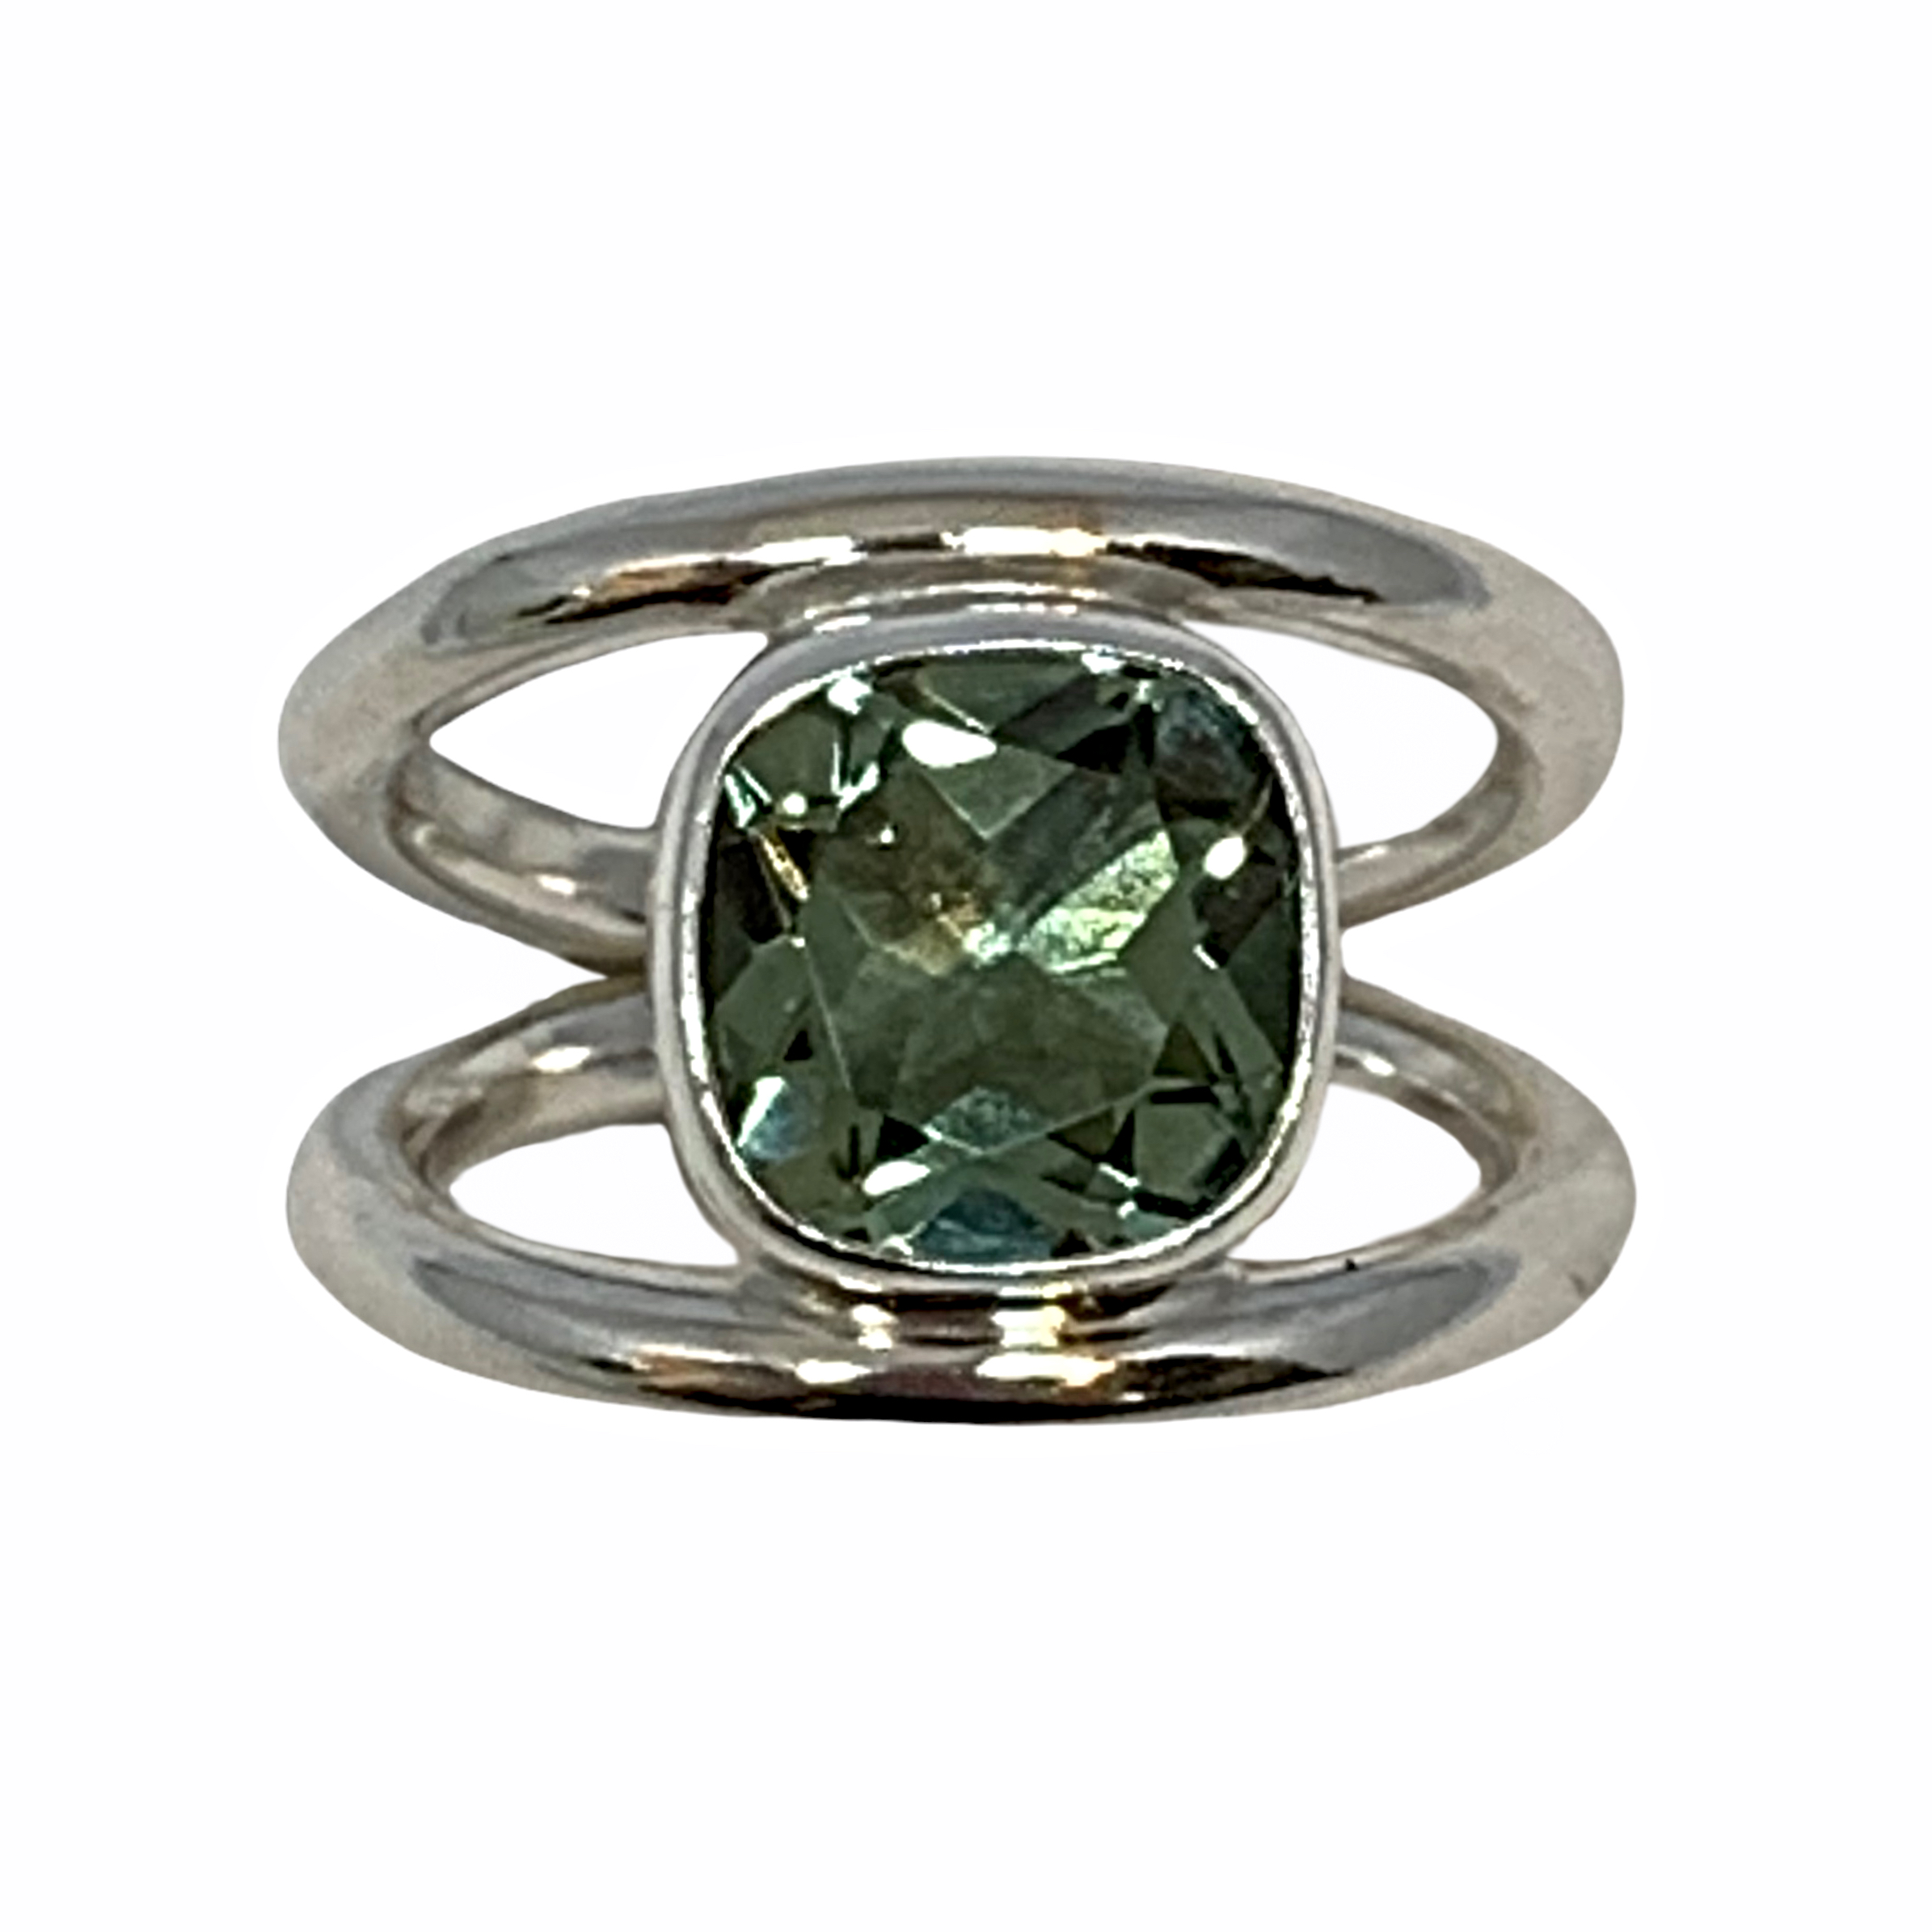 Handmade sterling silver and green amethyst ring by A&R Jewellery | Effusion Art Gallery + Cast Glass Studio, Invermere BC